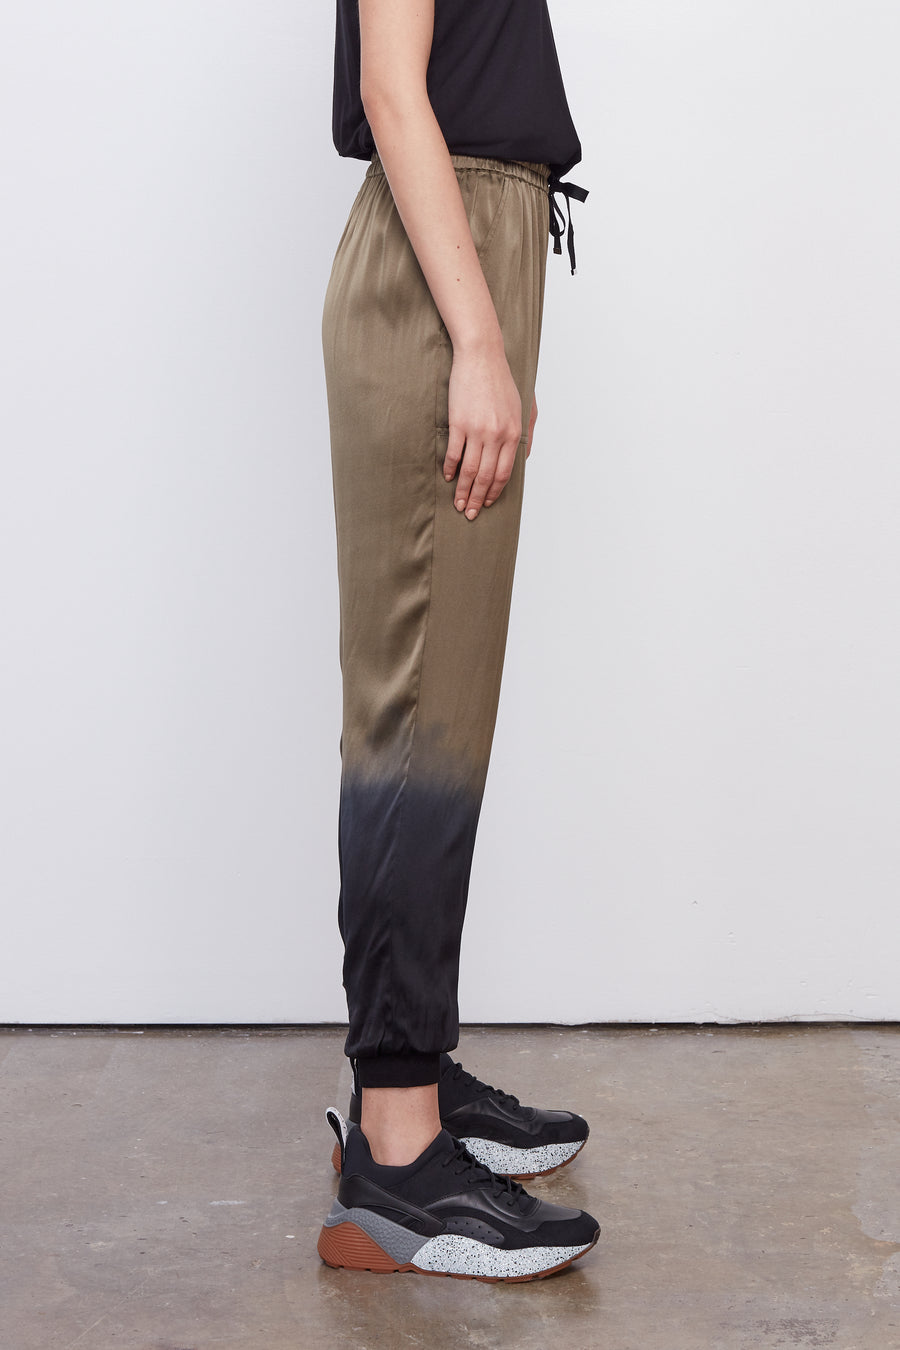 The Jogger Olive Dip Dye/Black